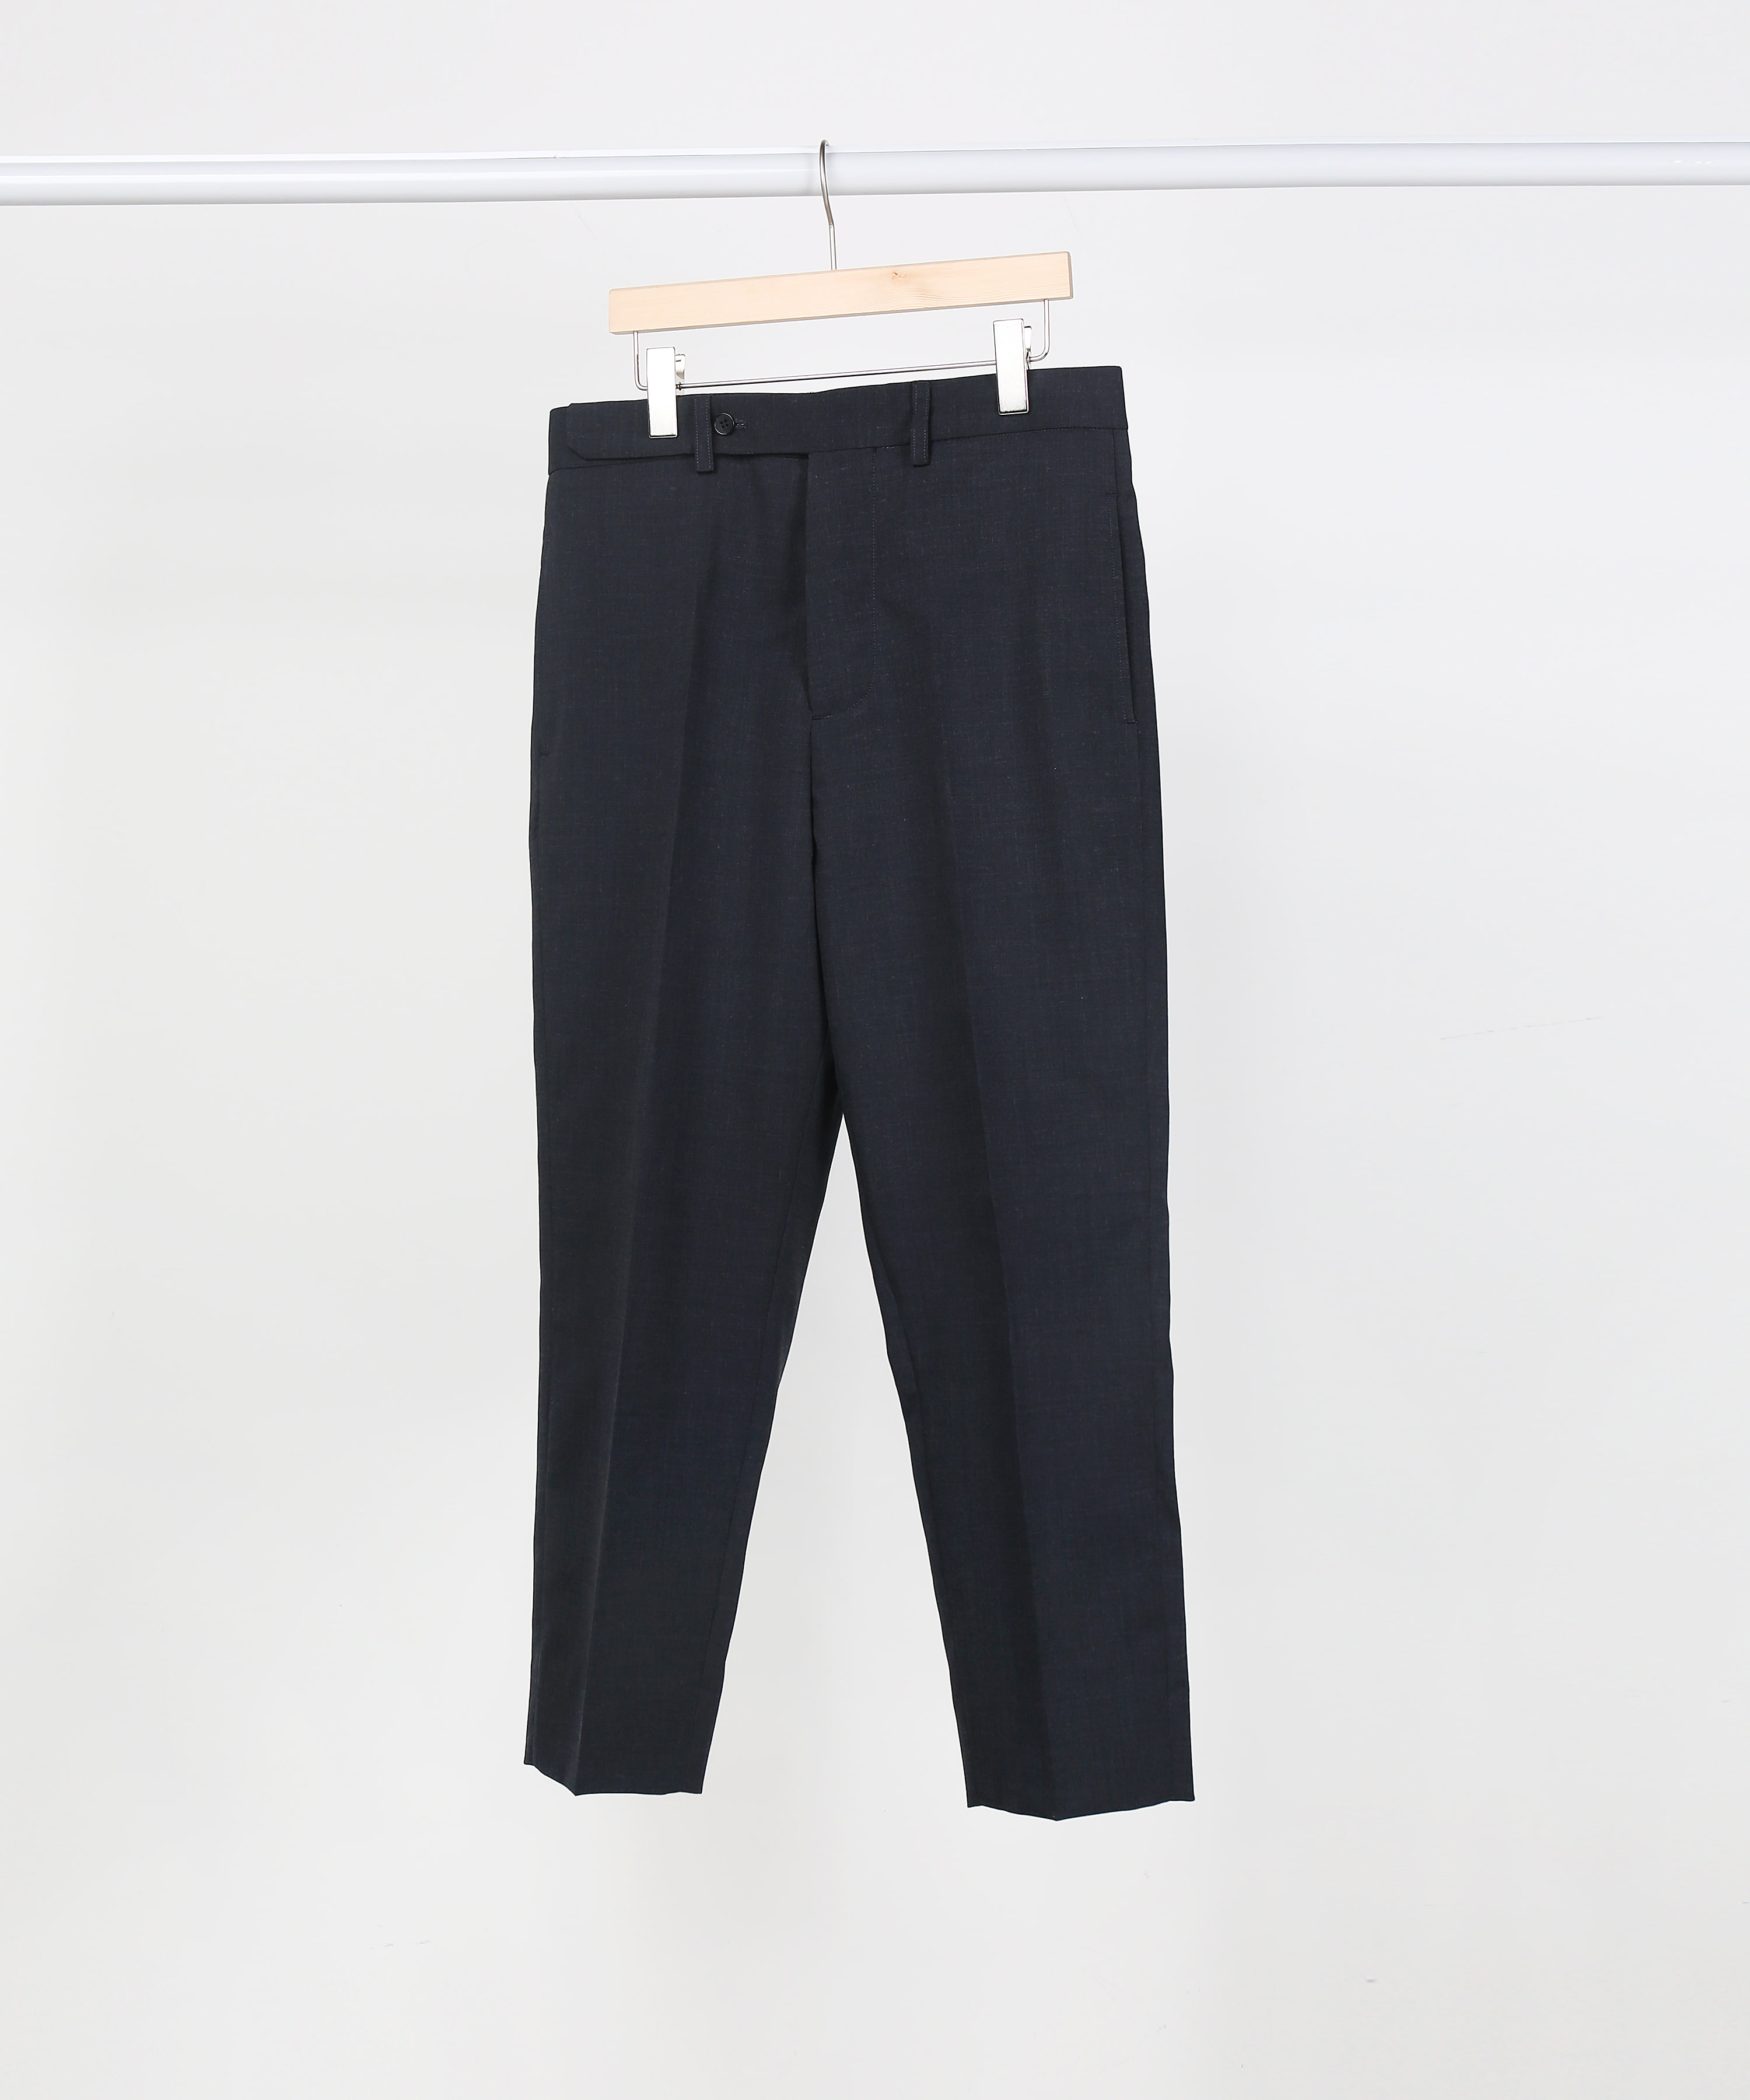 CHARCOAL NO TUCK TAILORED PANTS.01